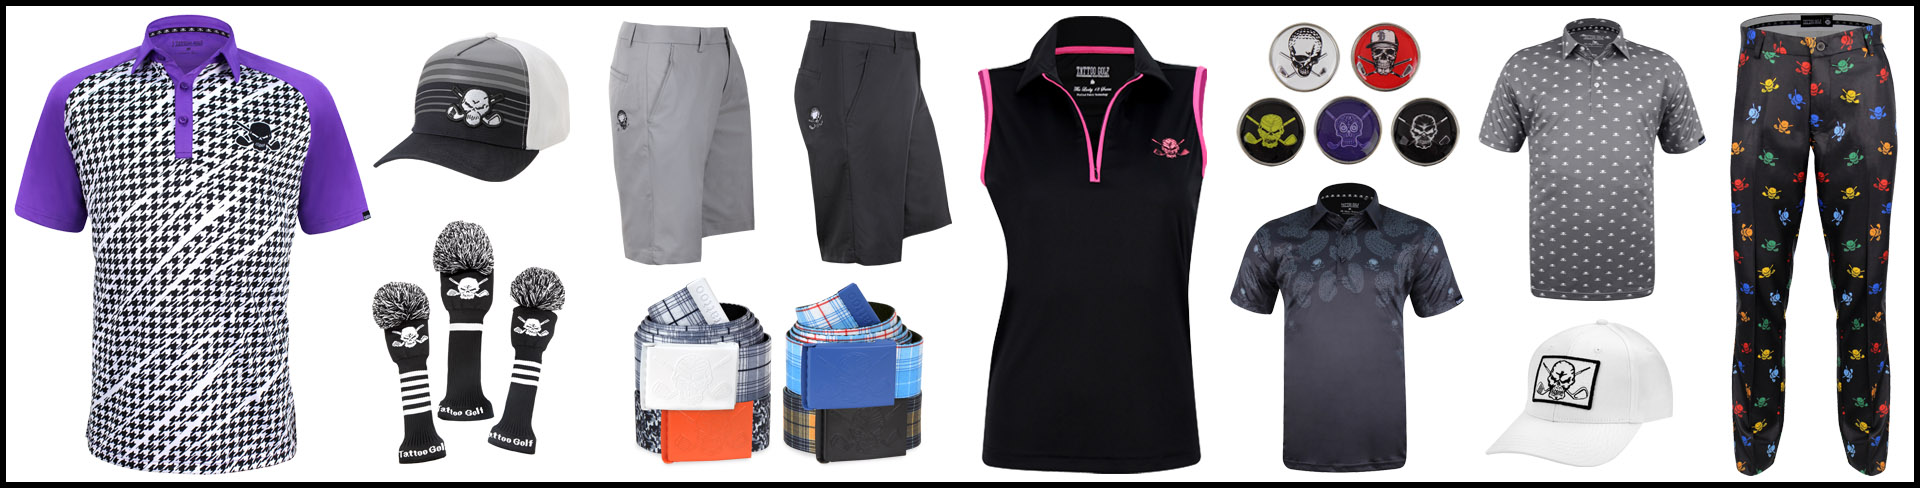 Womens Plus Size Golf Shirts Canada Chad Crowley Productions